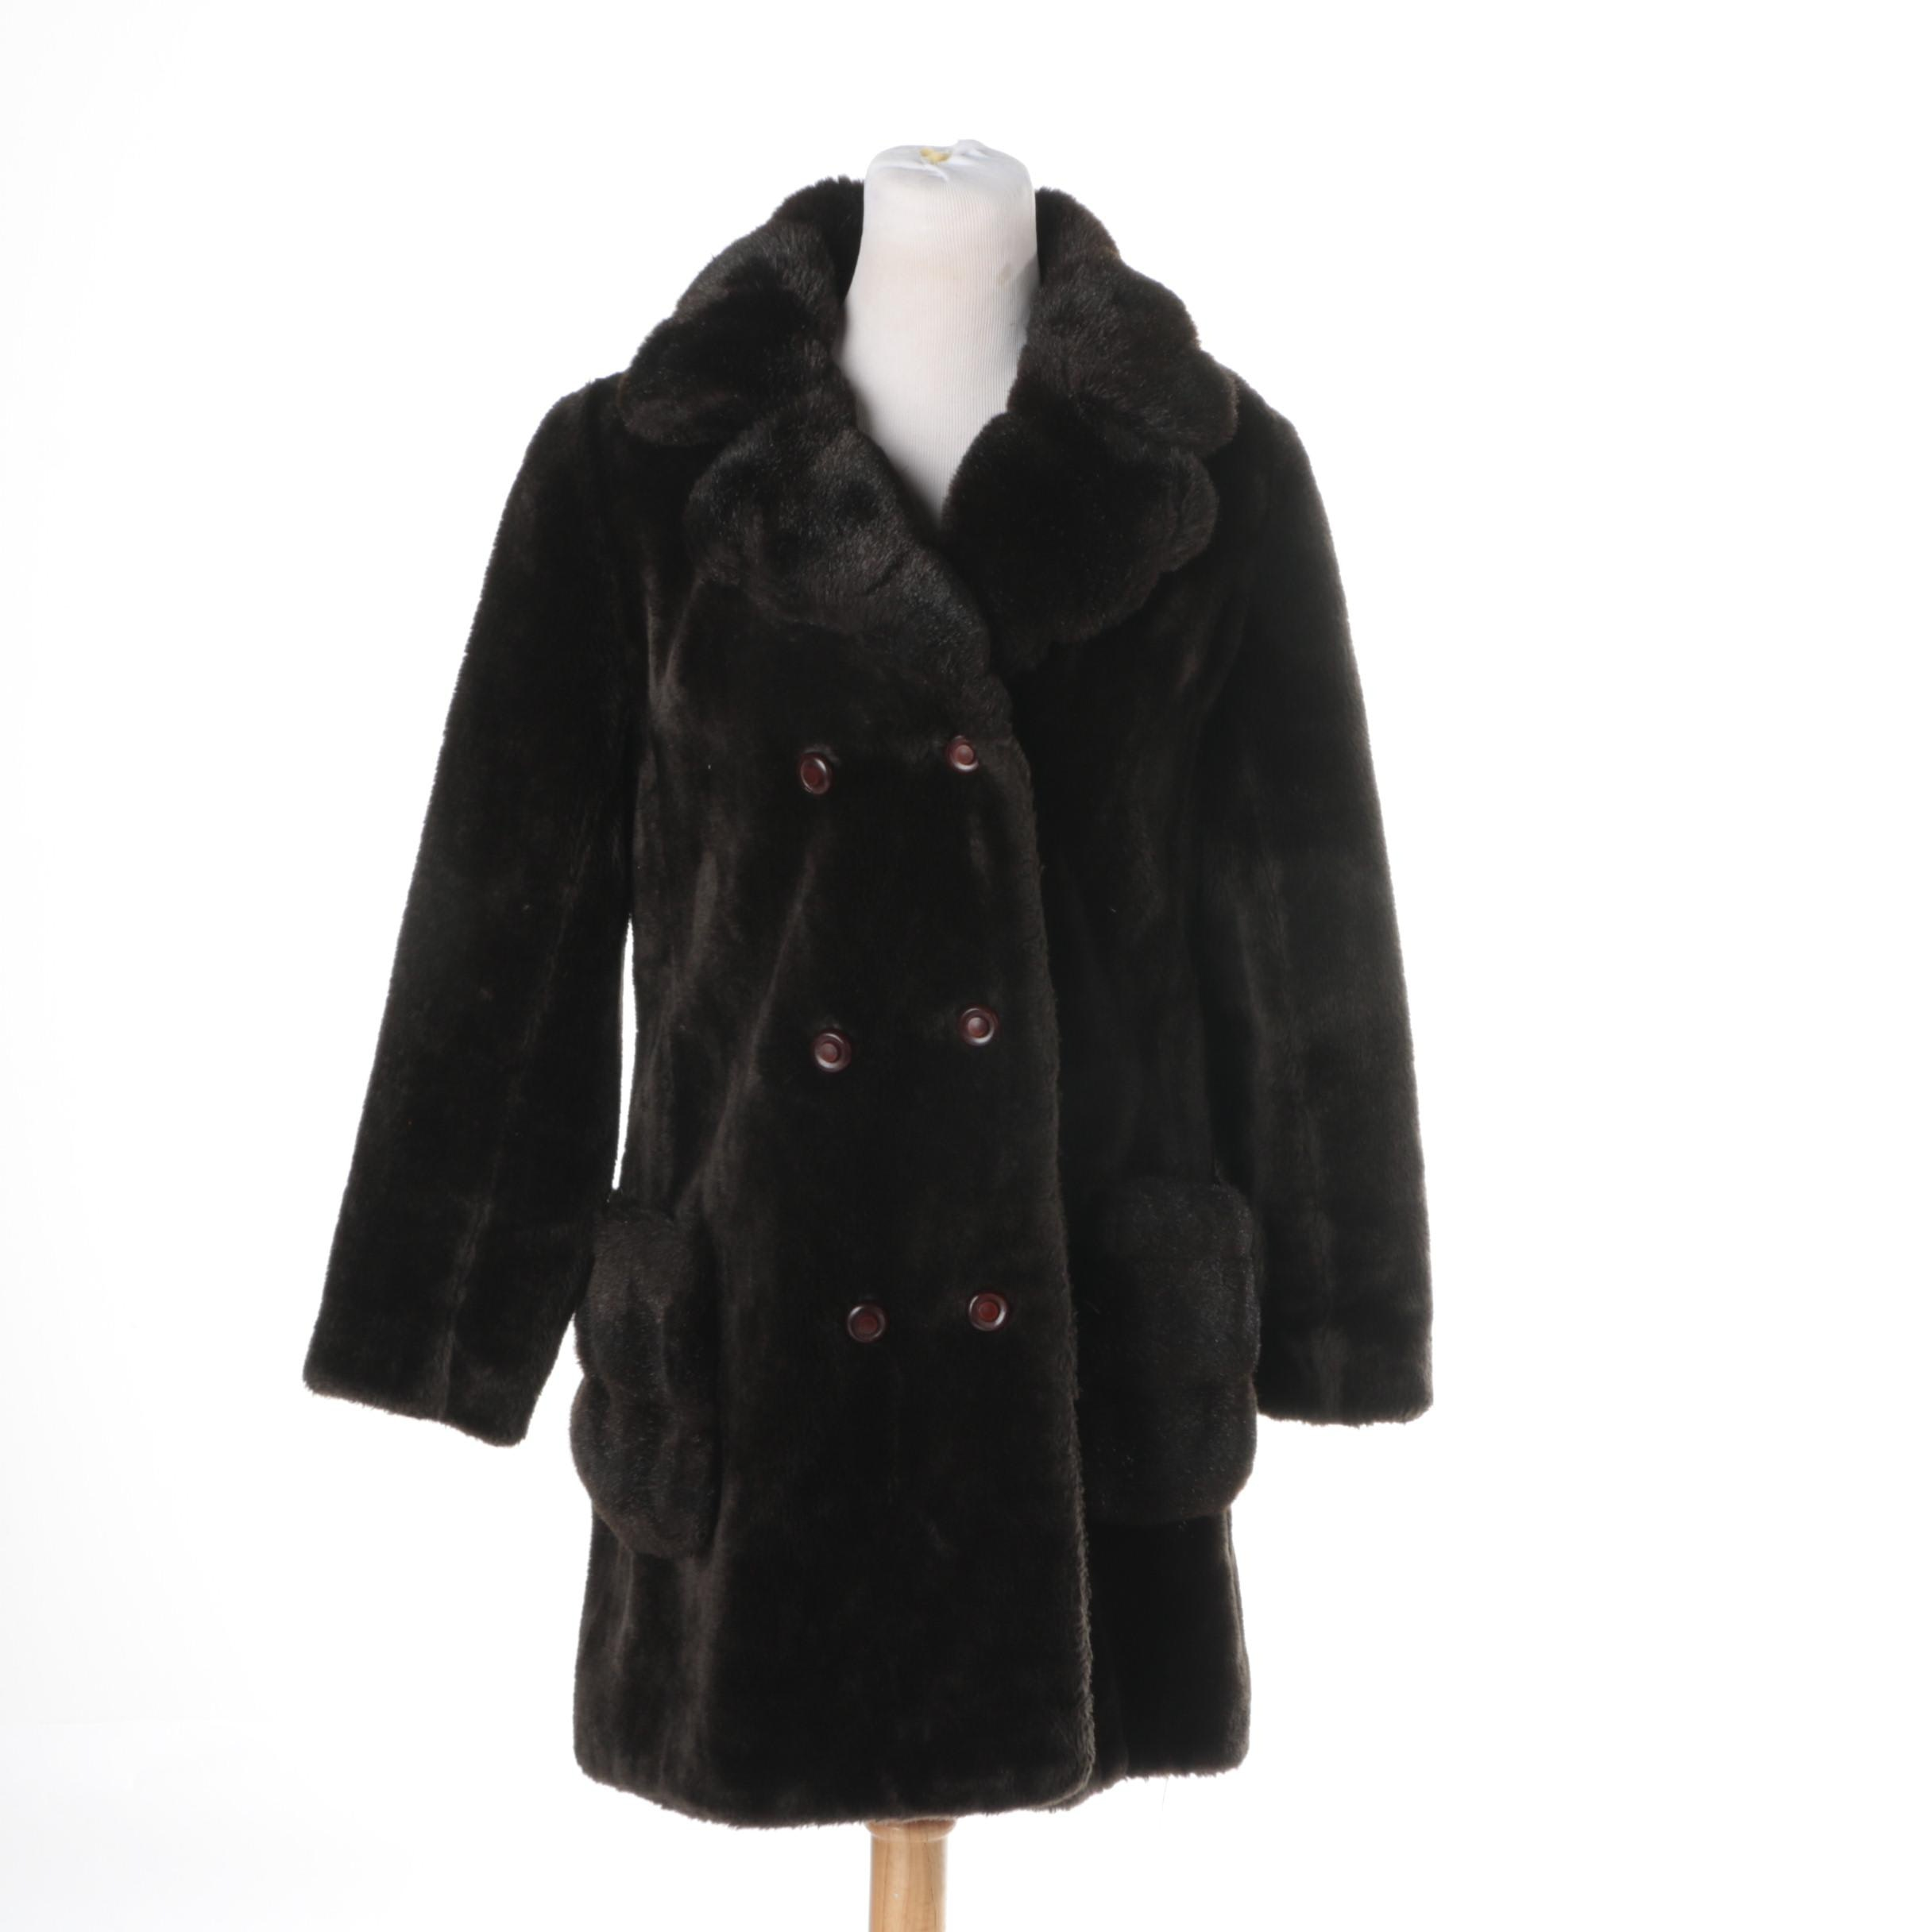 Women's Vintage Double-Breasted Faux Fur Coat